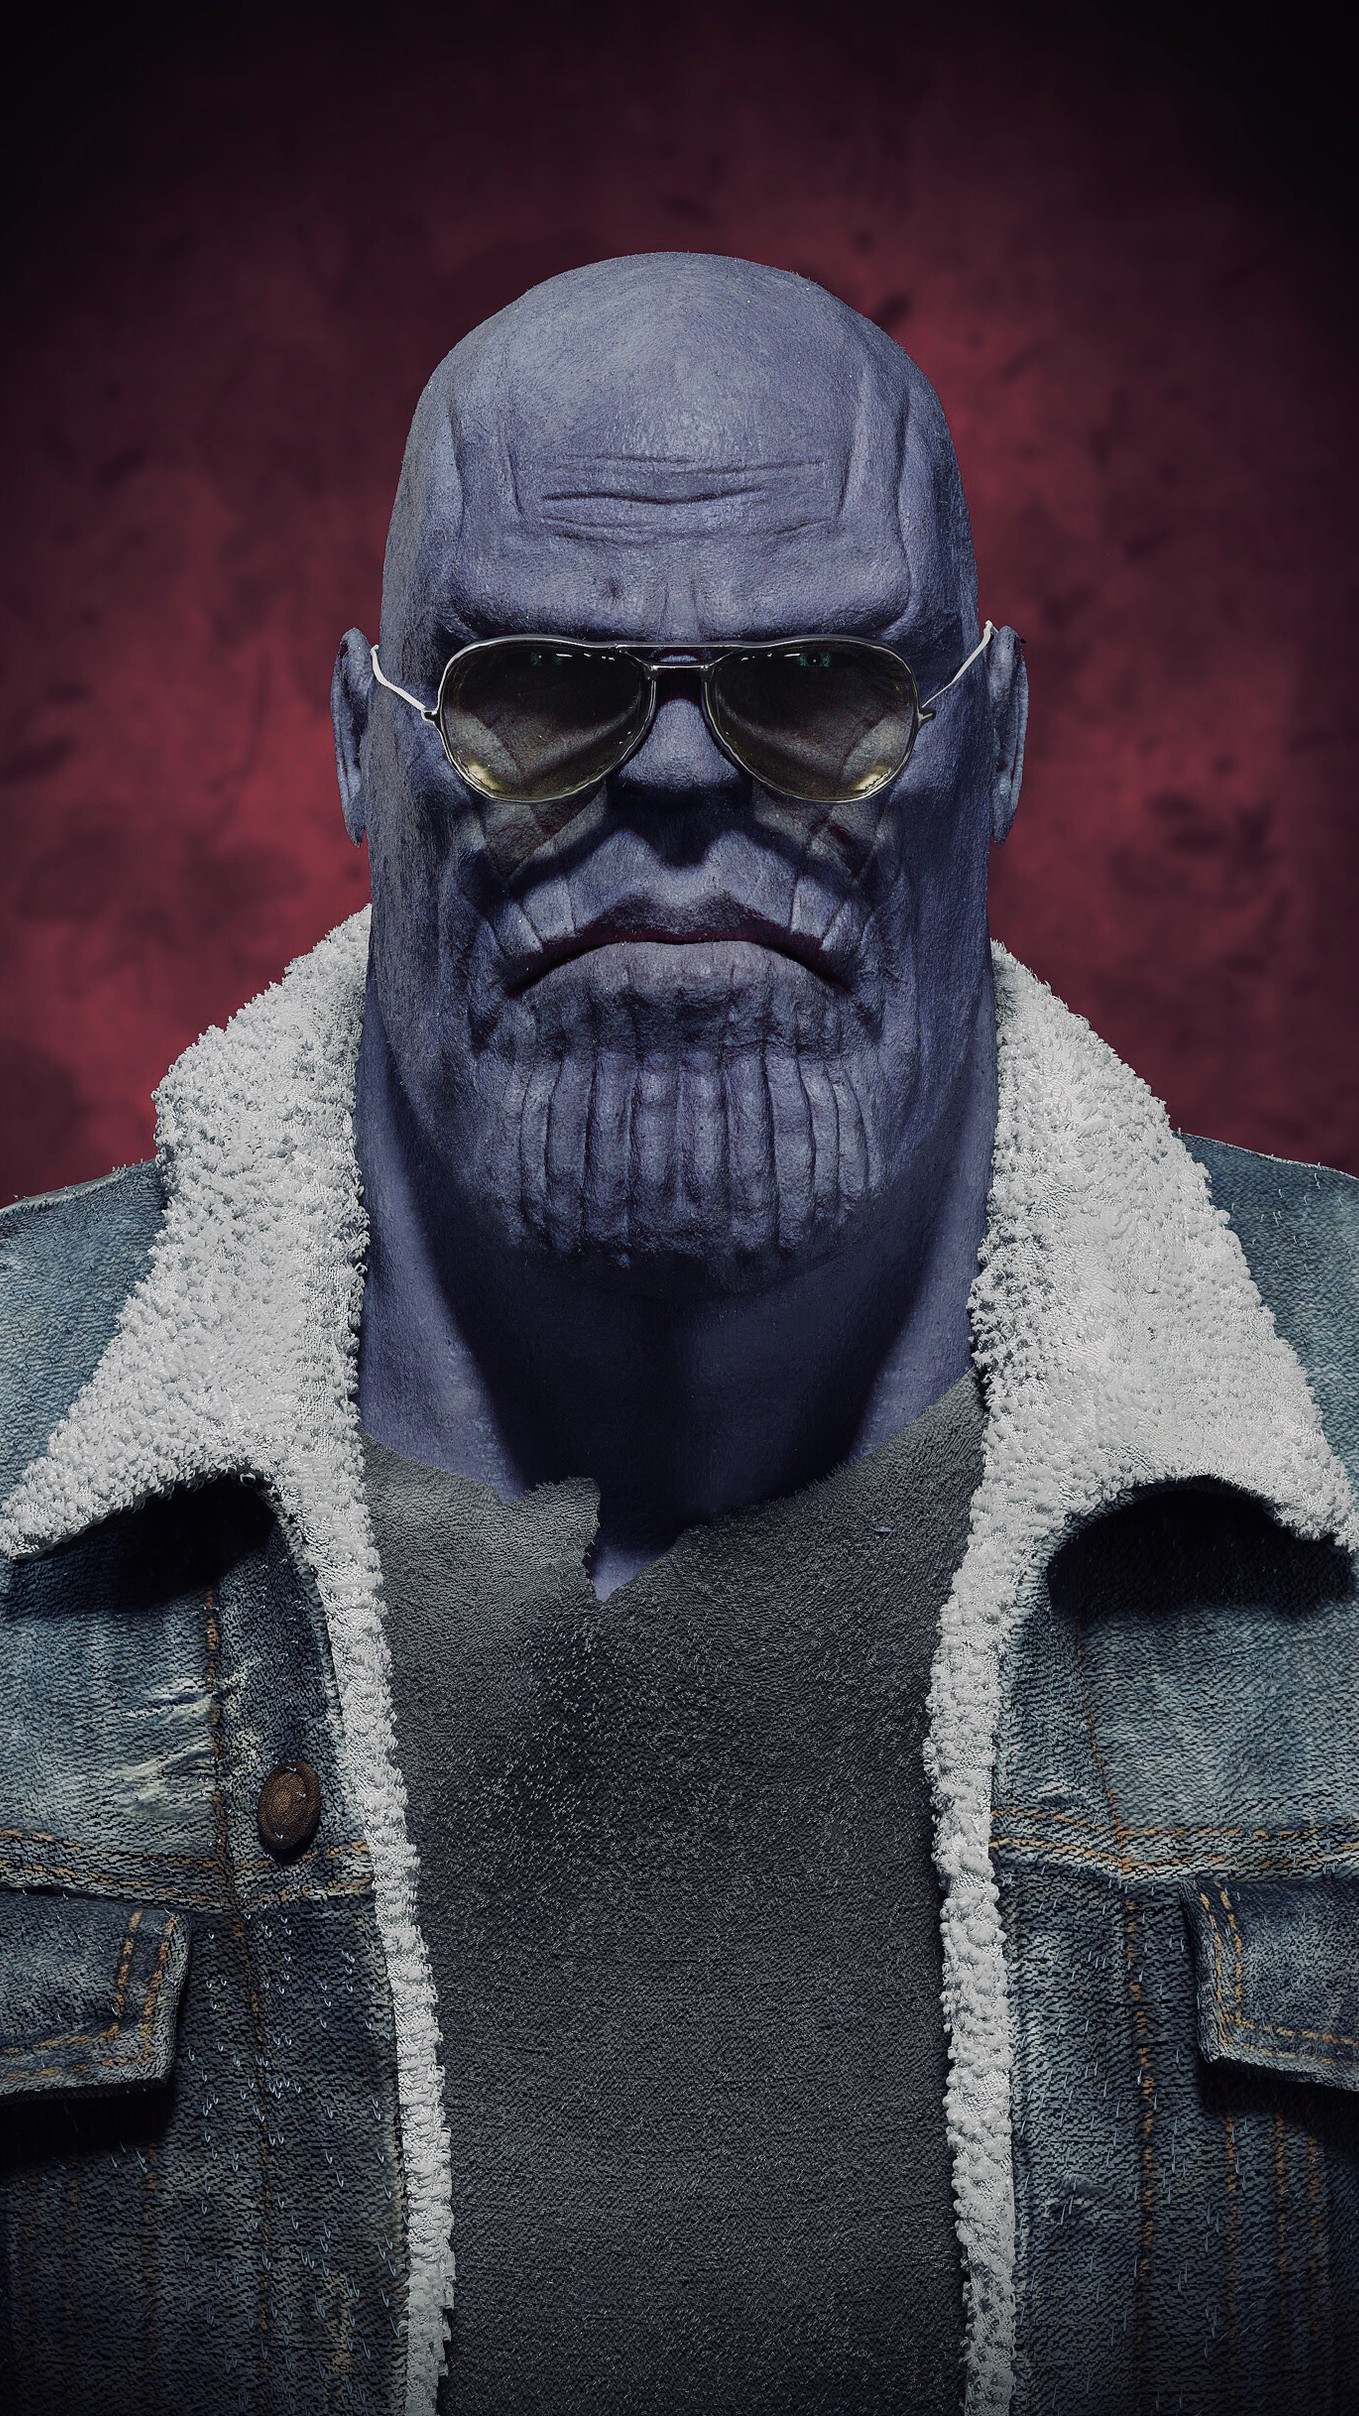 Iphone Wallpaper Quotes Love Thanos Fashion Iphone Wallpaper Iphone Wallpapers